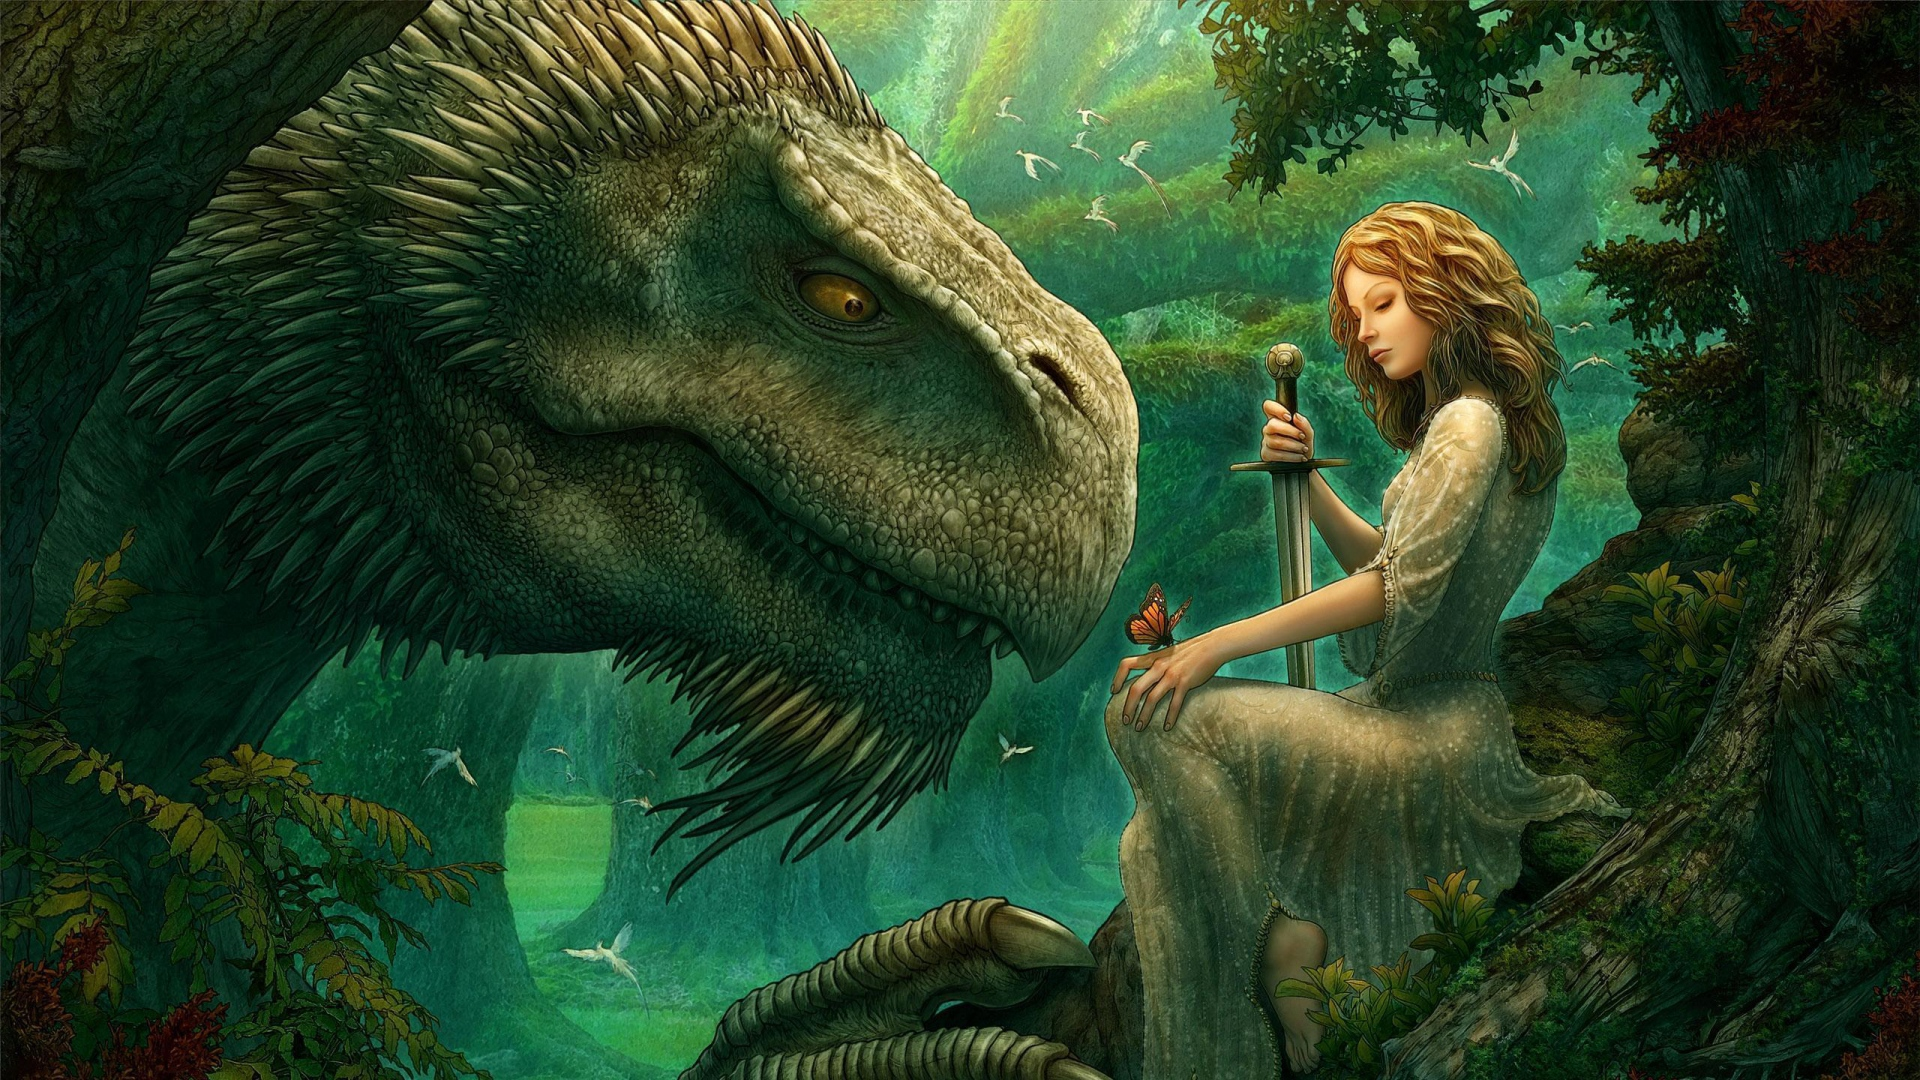 girl-dinosaur-sword-butterfly-wood-1920x1080